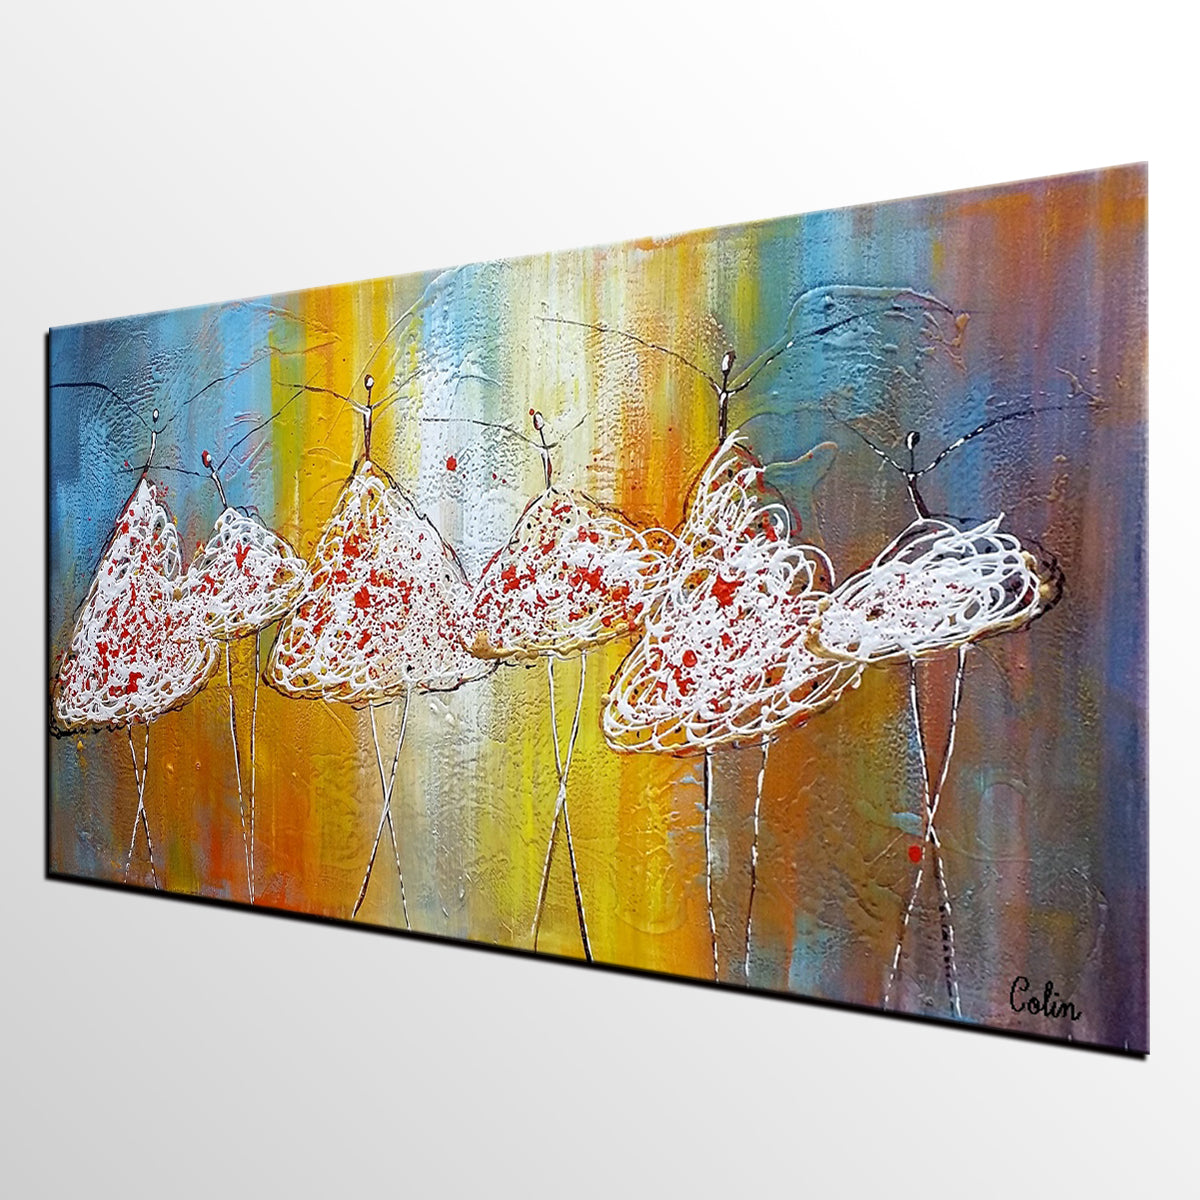 Original Painting, Ballet Dancer Art, Canvas Wall Art, Contemporary Art, Bedroom Wall Art, Abstract Art, Large Art, Abstract Painting